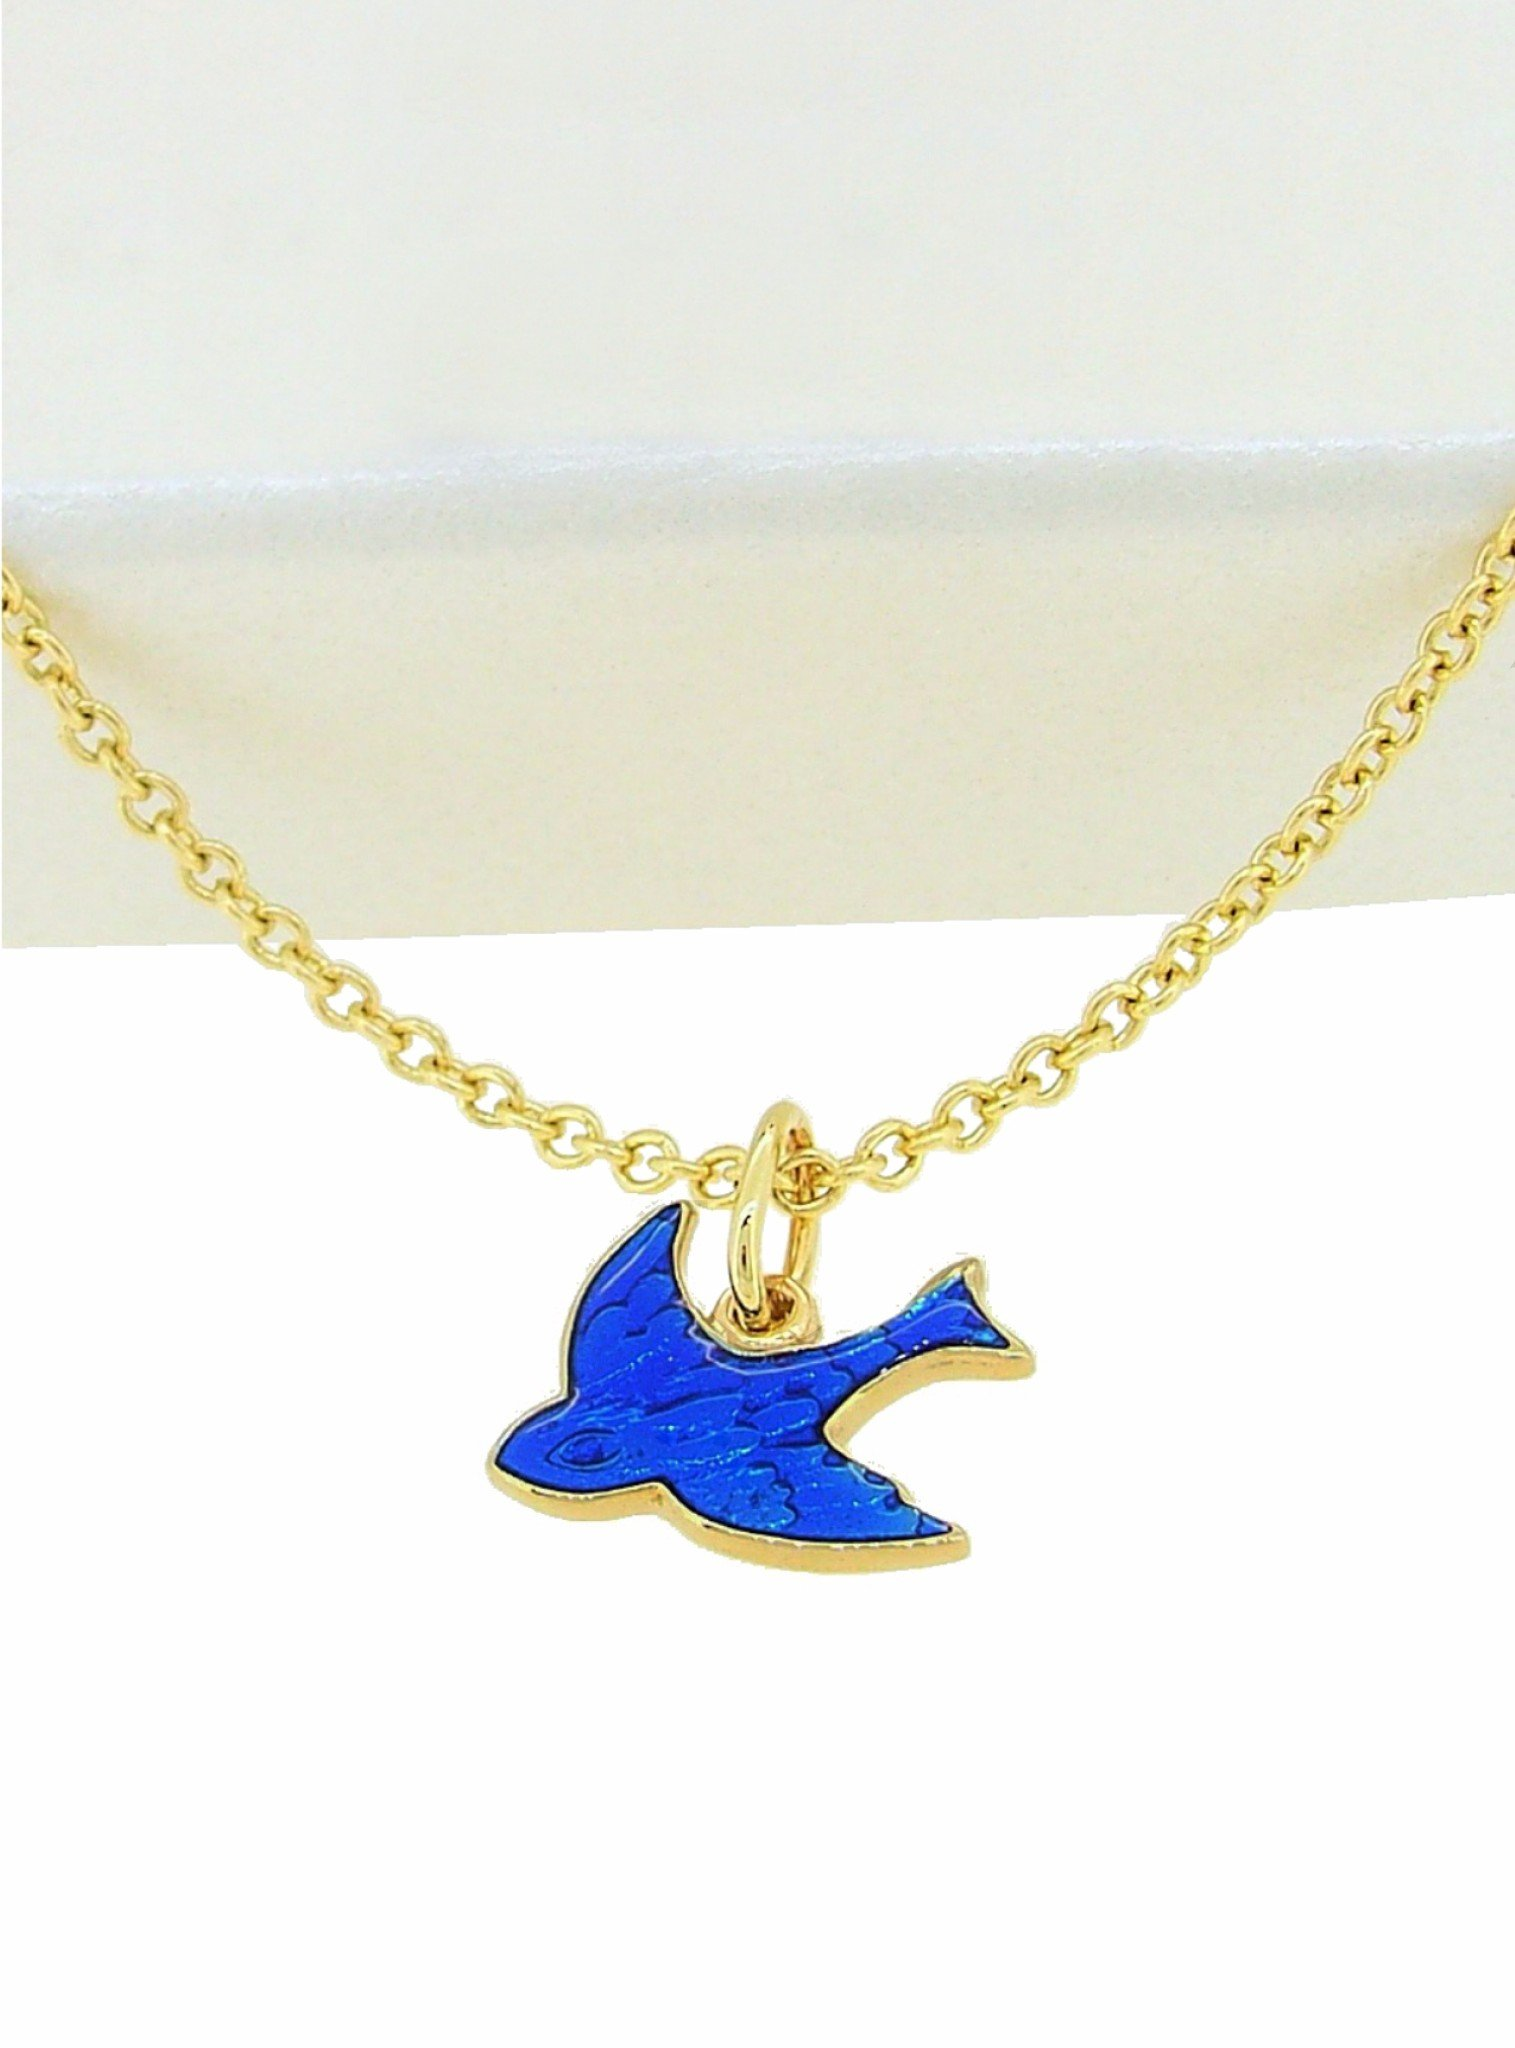 Bluebird of Happiness 9ct Gold Charm Necklace